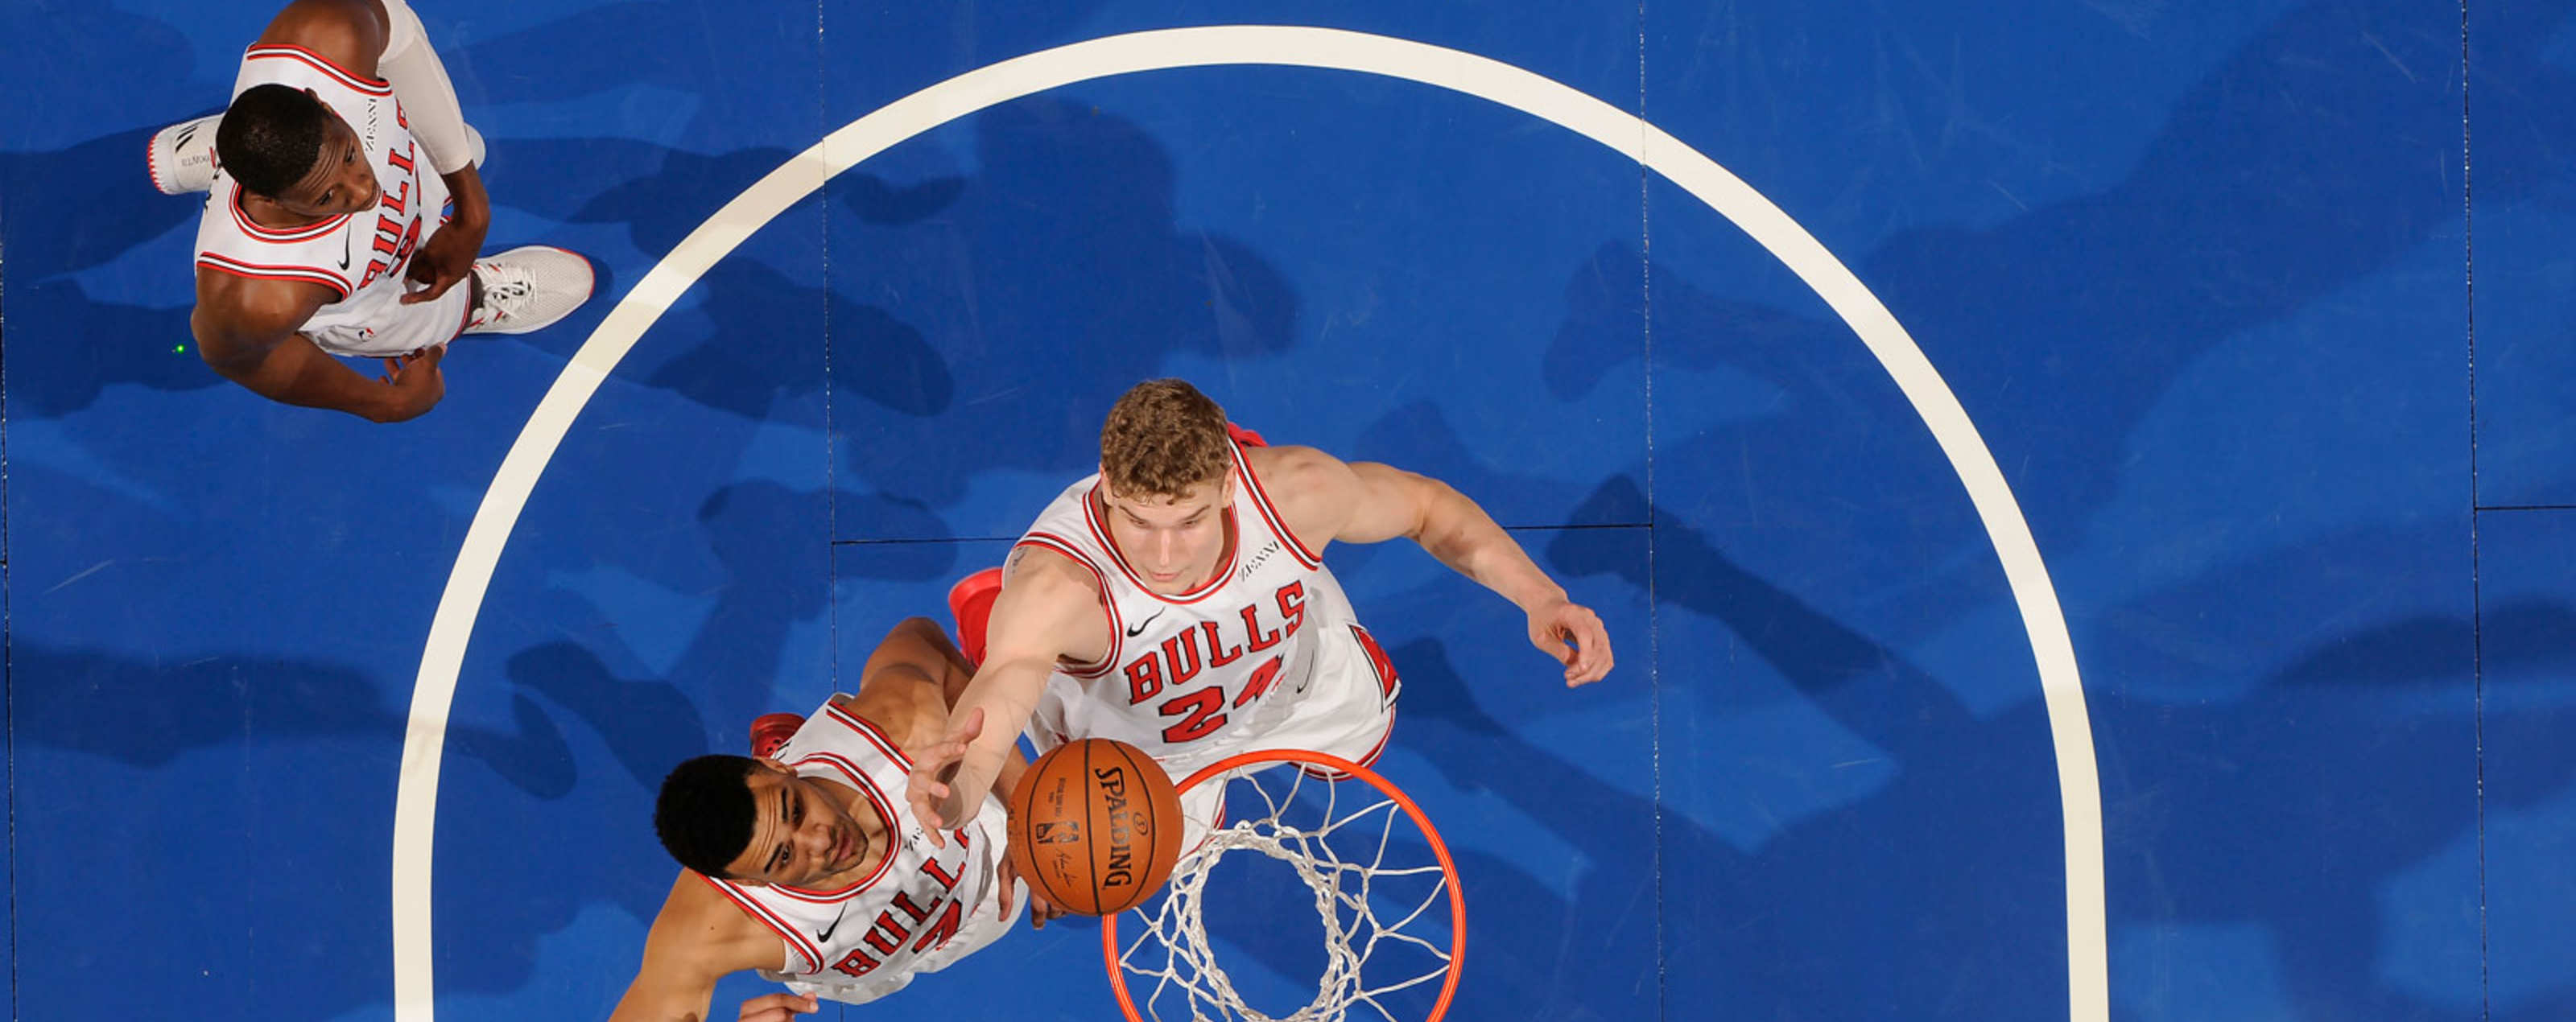 Lauri Markkanen #24 of the Chicago Bulls shoots the ball against the Orlando Magic on February 22, 2019 at Amway Center in Orlando, Florida.